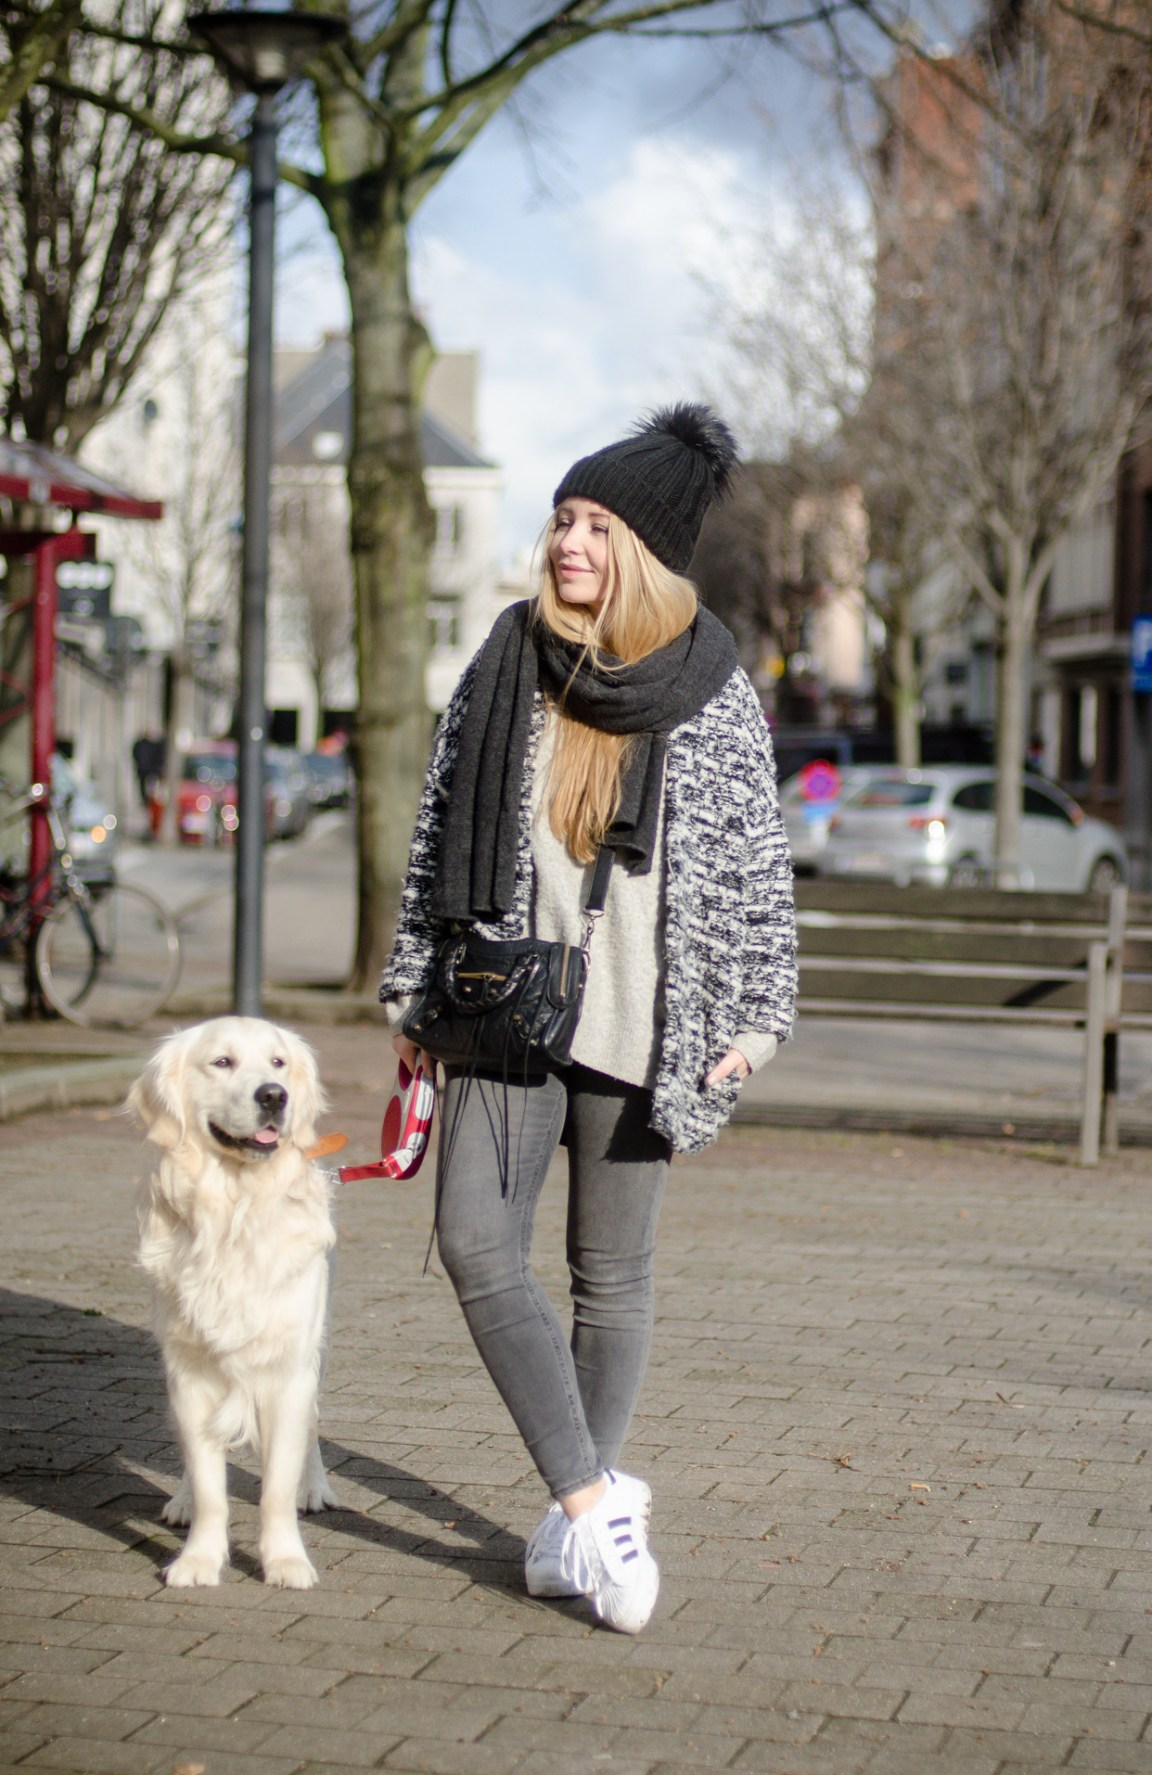 Dogs and Dresses doggy walks outfit